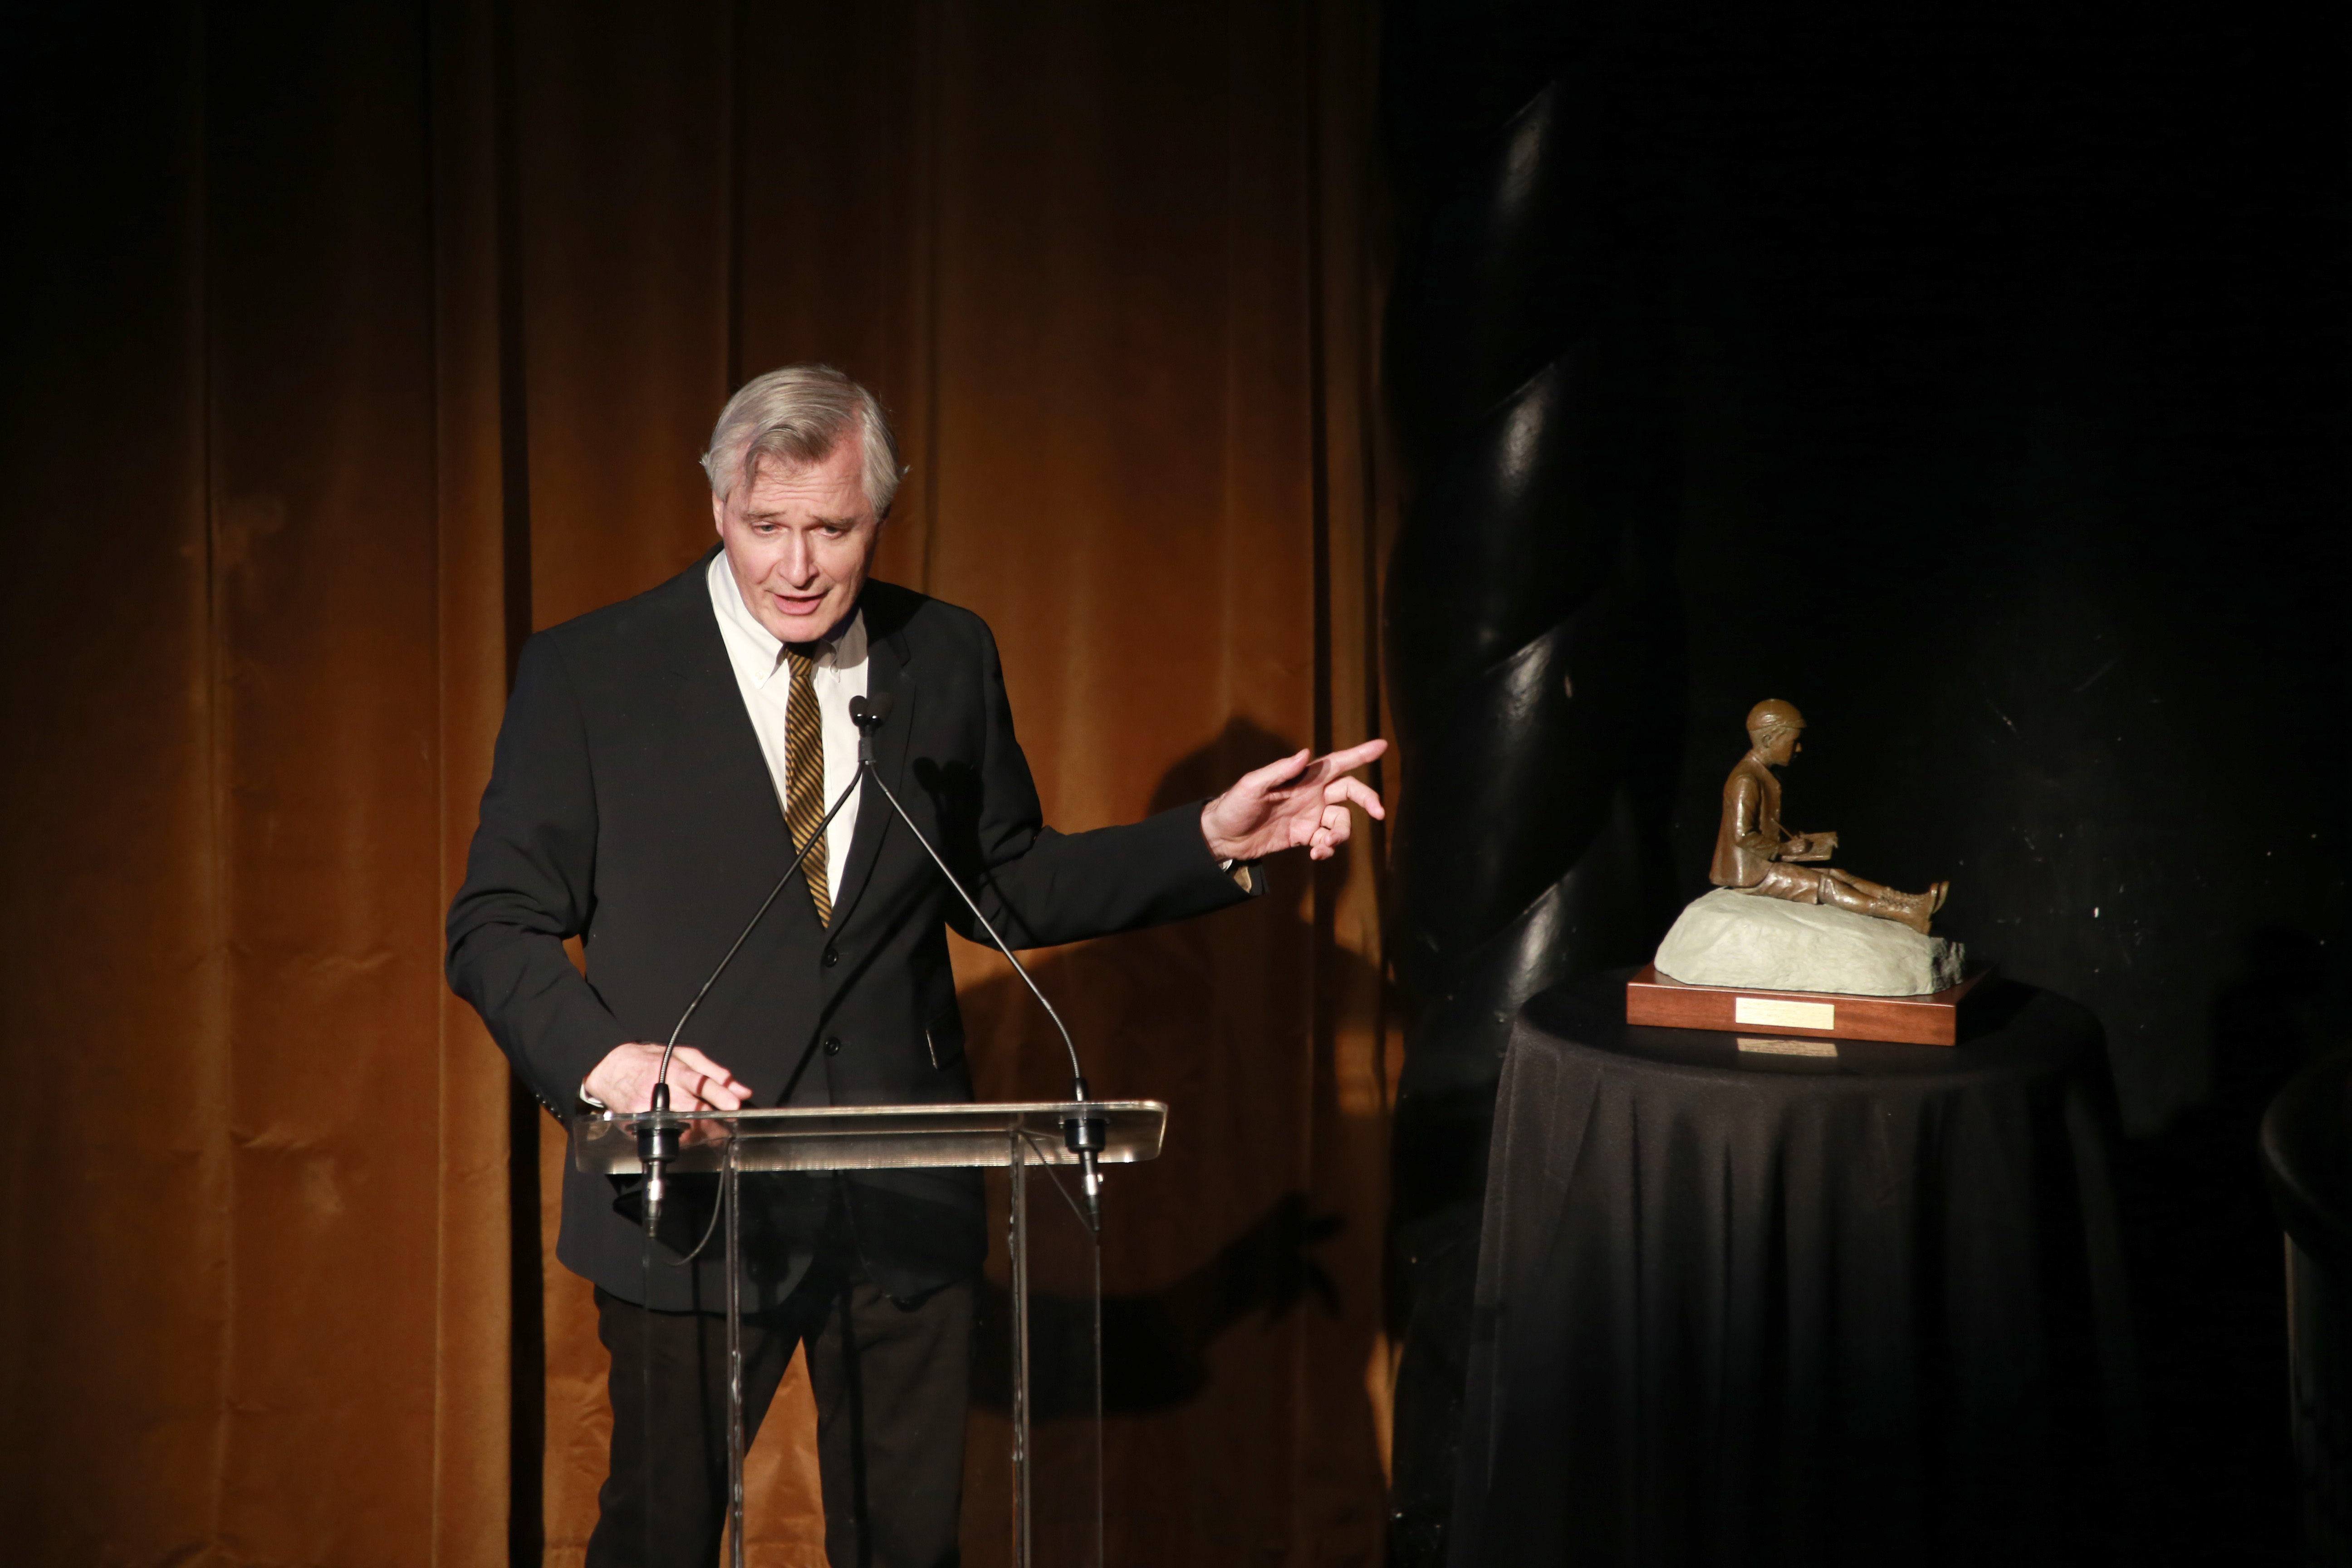 Playwright and director John Patrick Shanley speaks during the 2014 Monte Cristo Award dinner honoring Meryl Streep at the Edison Ballroom on Monday, April 21, 2014, in New York. (Photo by Luiz C. Ribeiro/Invision/AP)